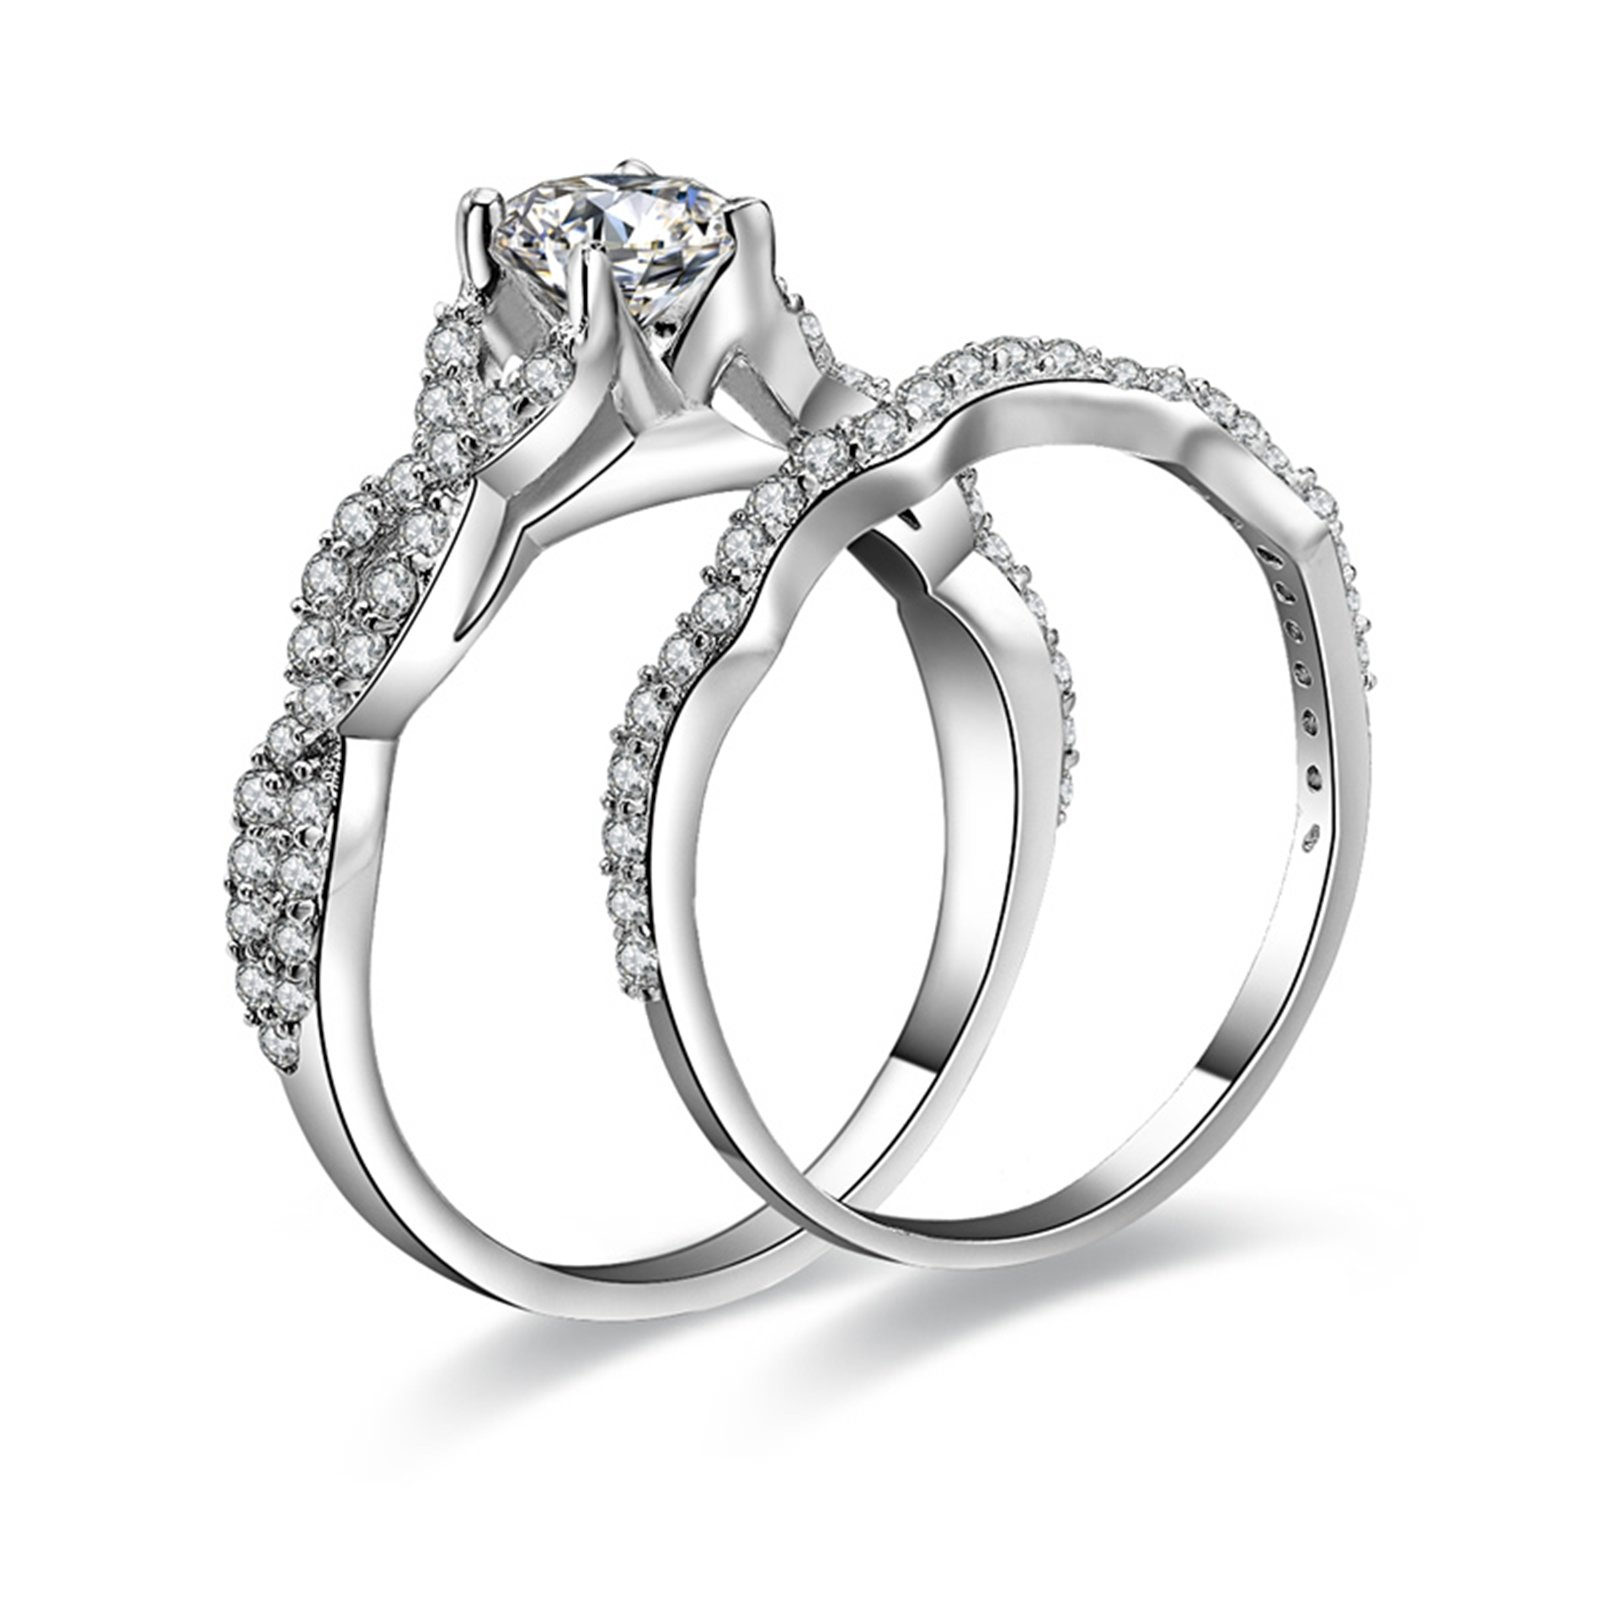 Daesar Cubic Zirconia Ring Round Solitaire 4-Prong Round Crystal Infinity Ring Set Ring Size 7.5